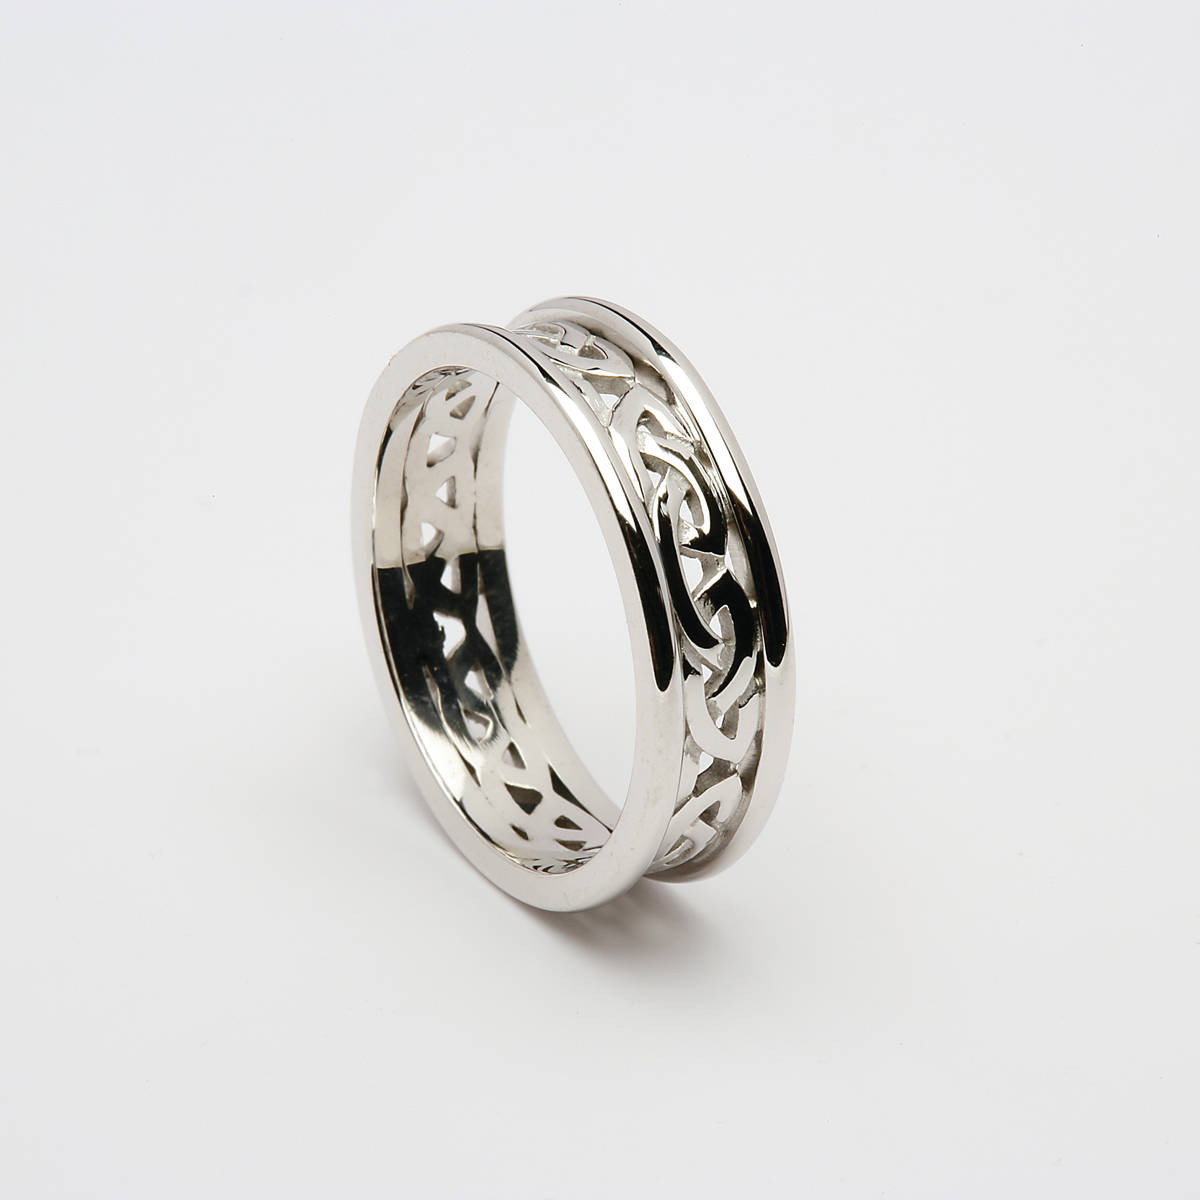 14 carat white gold lady's open Celtic knot wedding ring